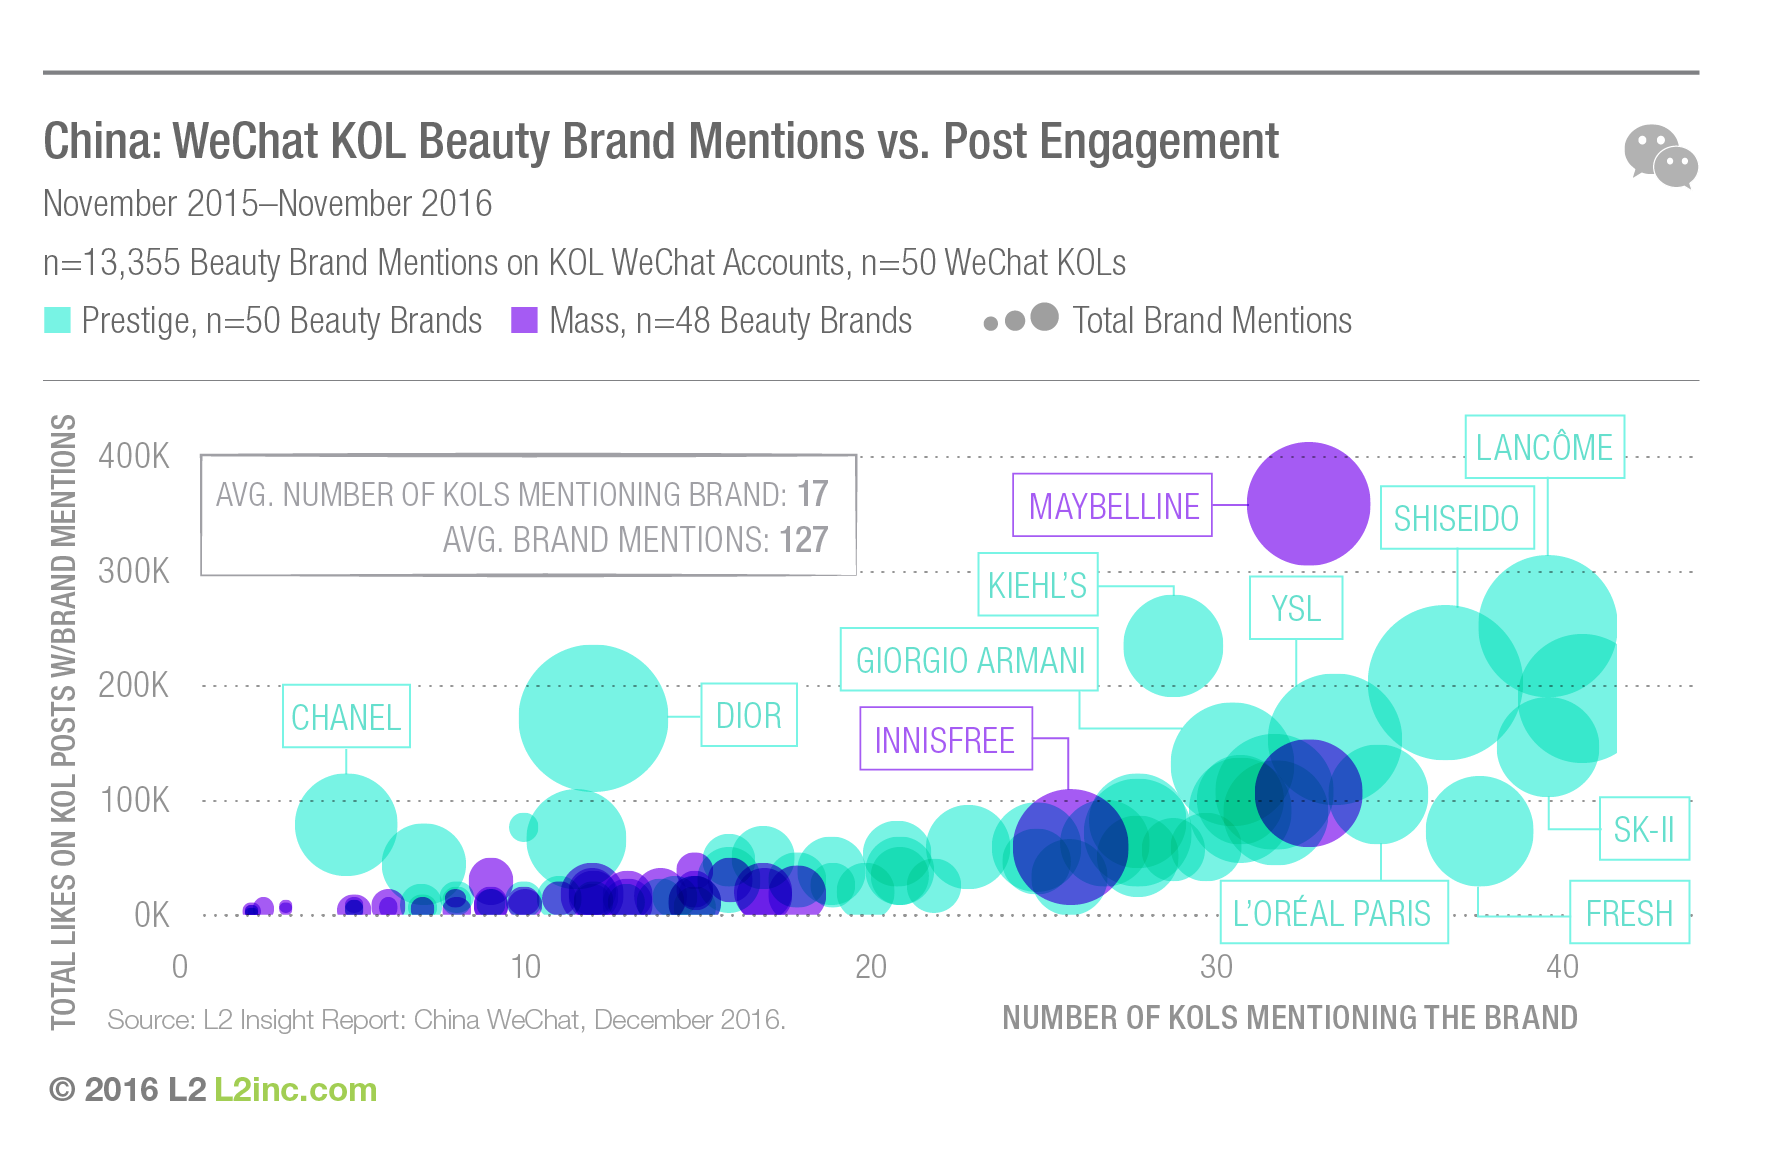 china-wechat-2016-china-wechat-kol-beauty-brand-mentions-vs-post-engagement